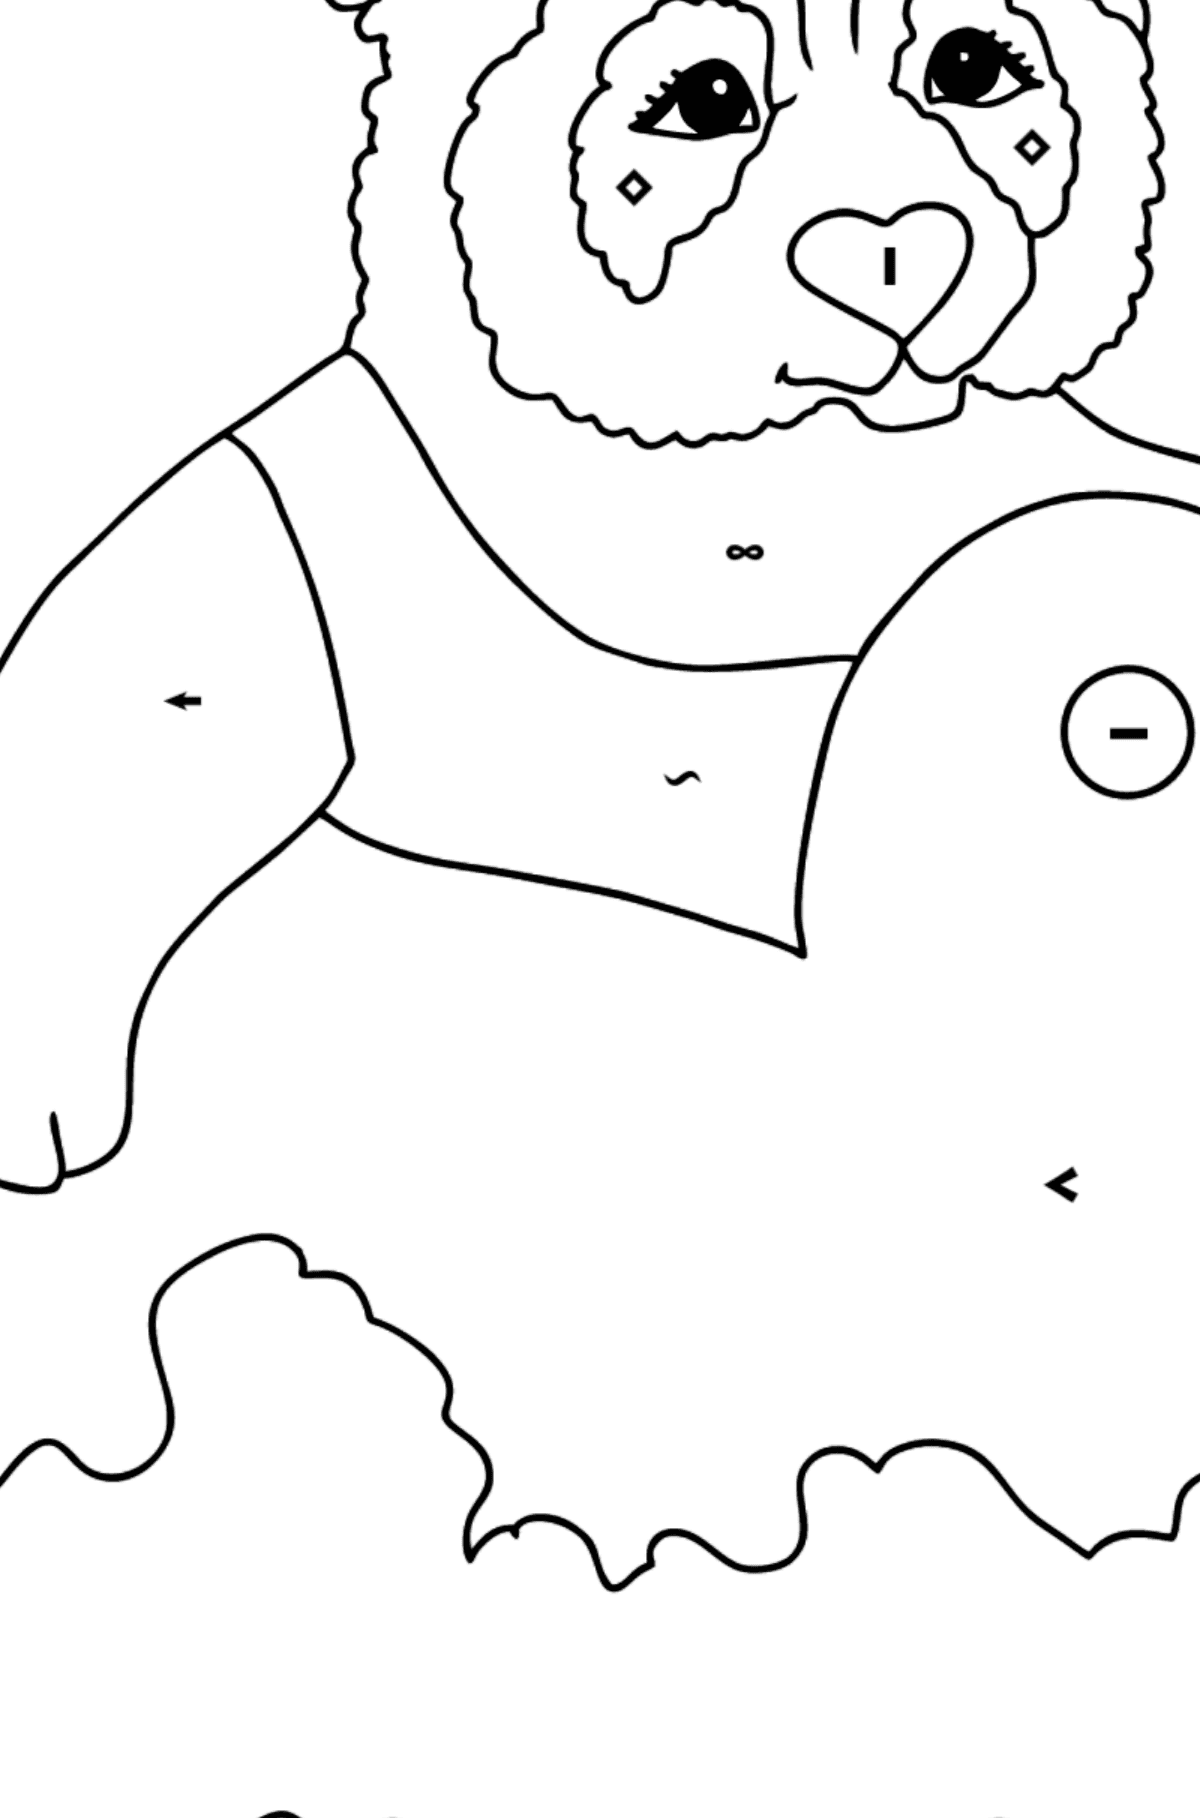 Coloring Picture - A Panda is Swimming - Coloring by Symbols for Kids